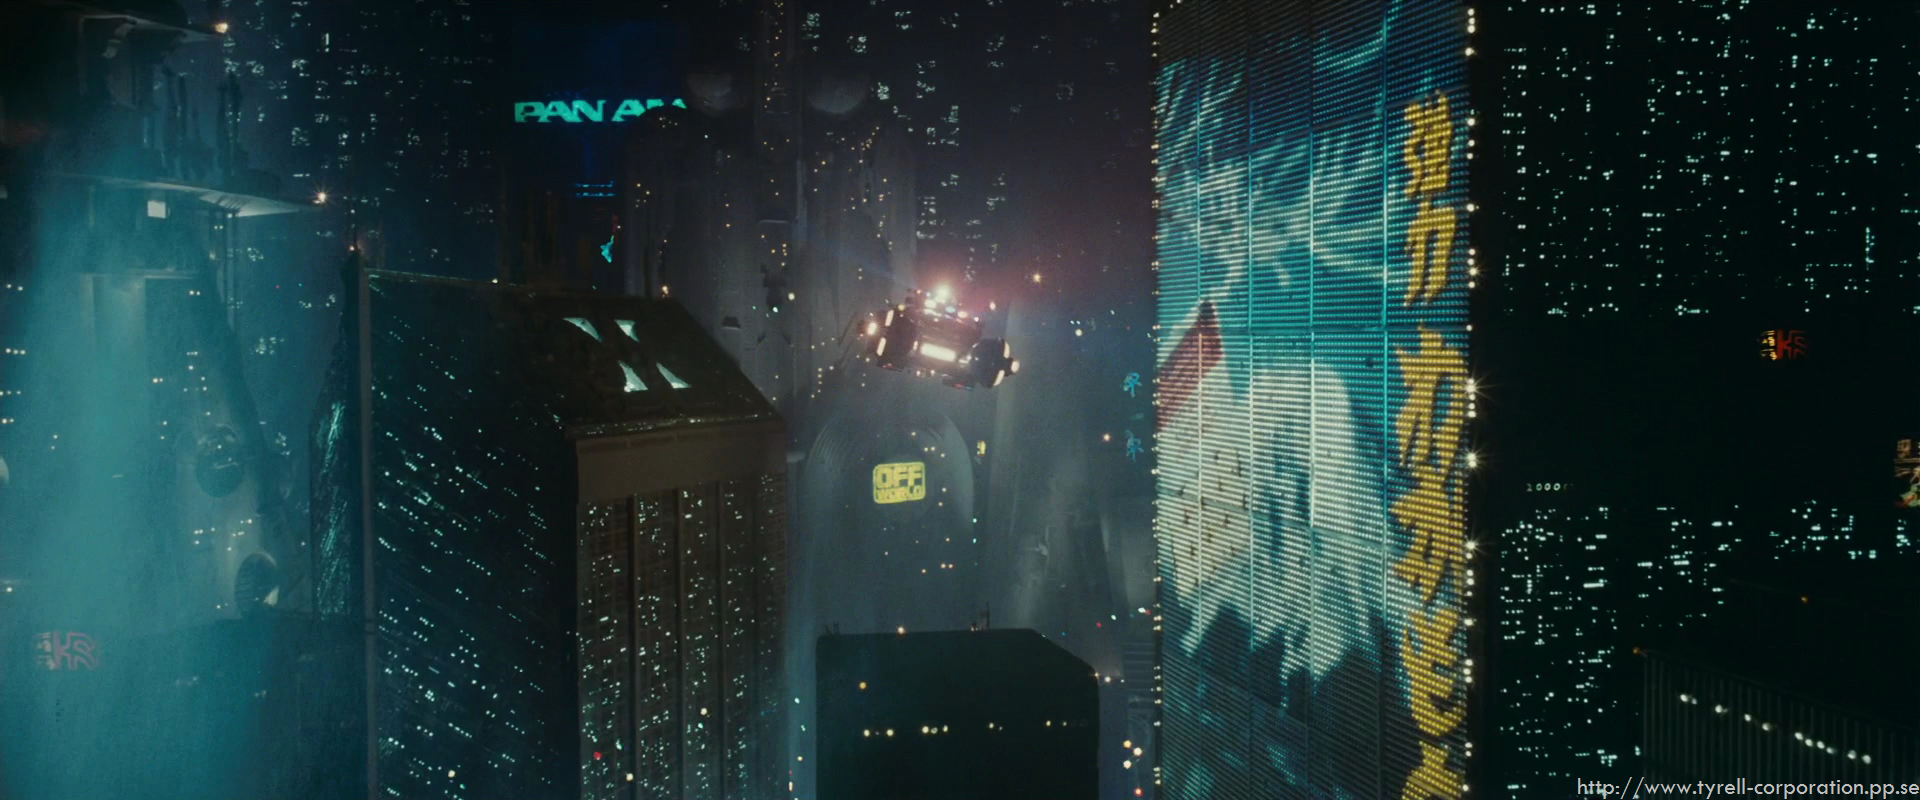 Blade Runner 1920800 Wallpaper 772053 1920x800